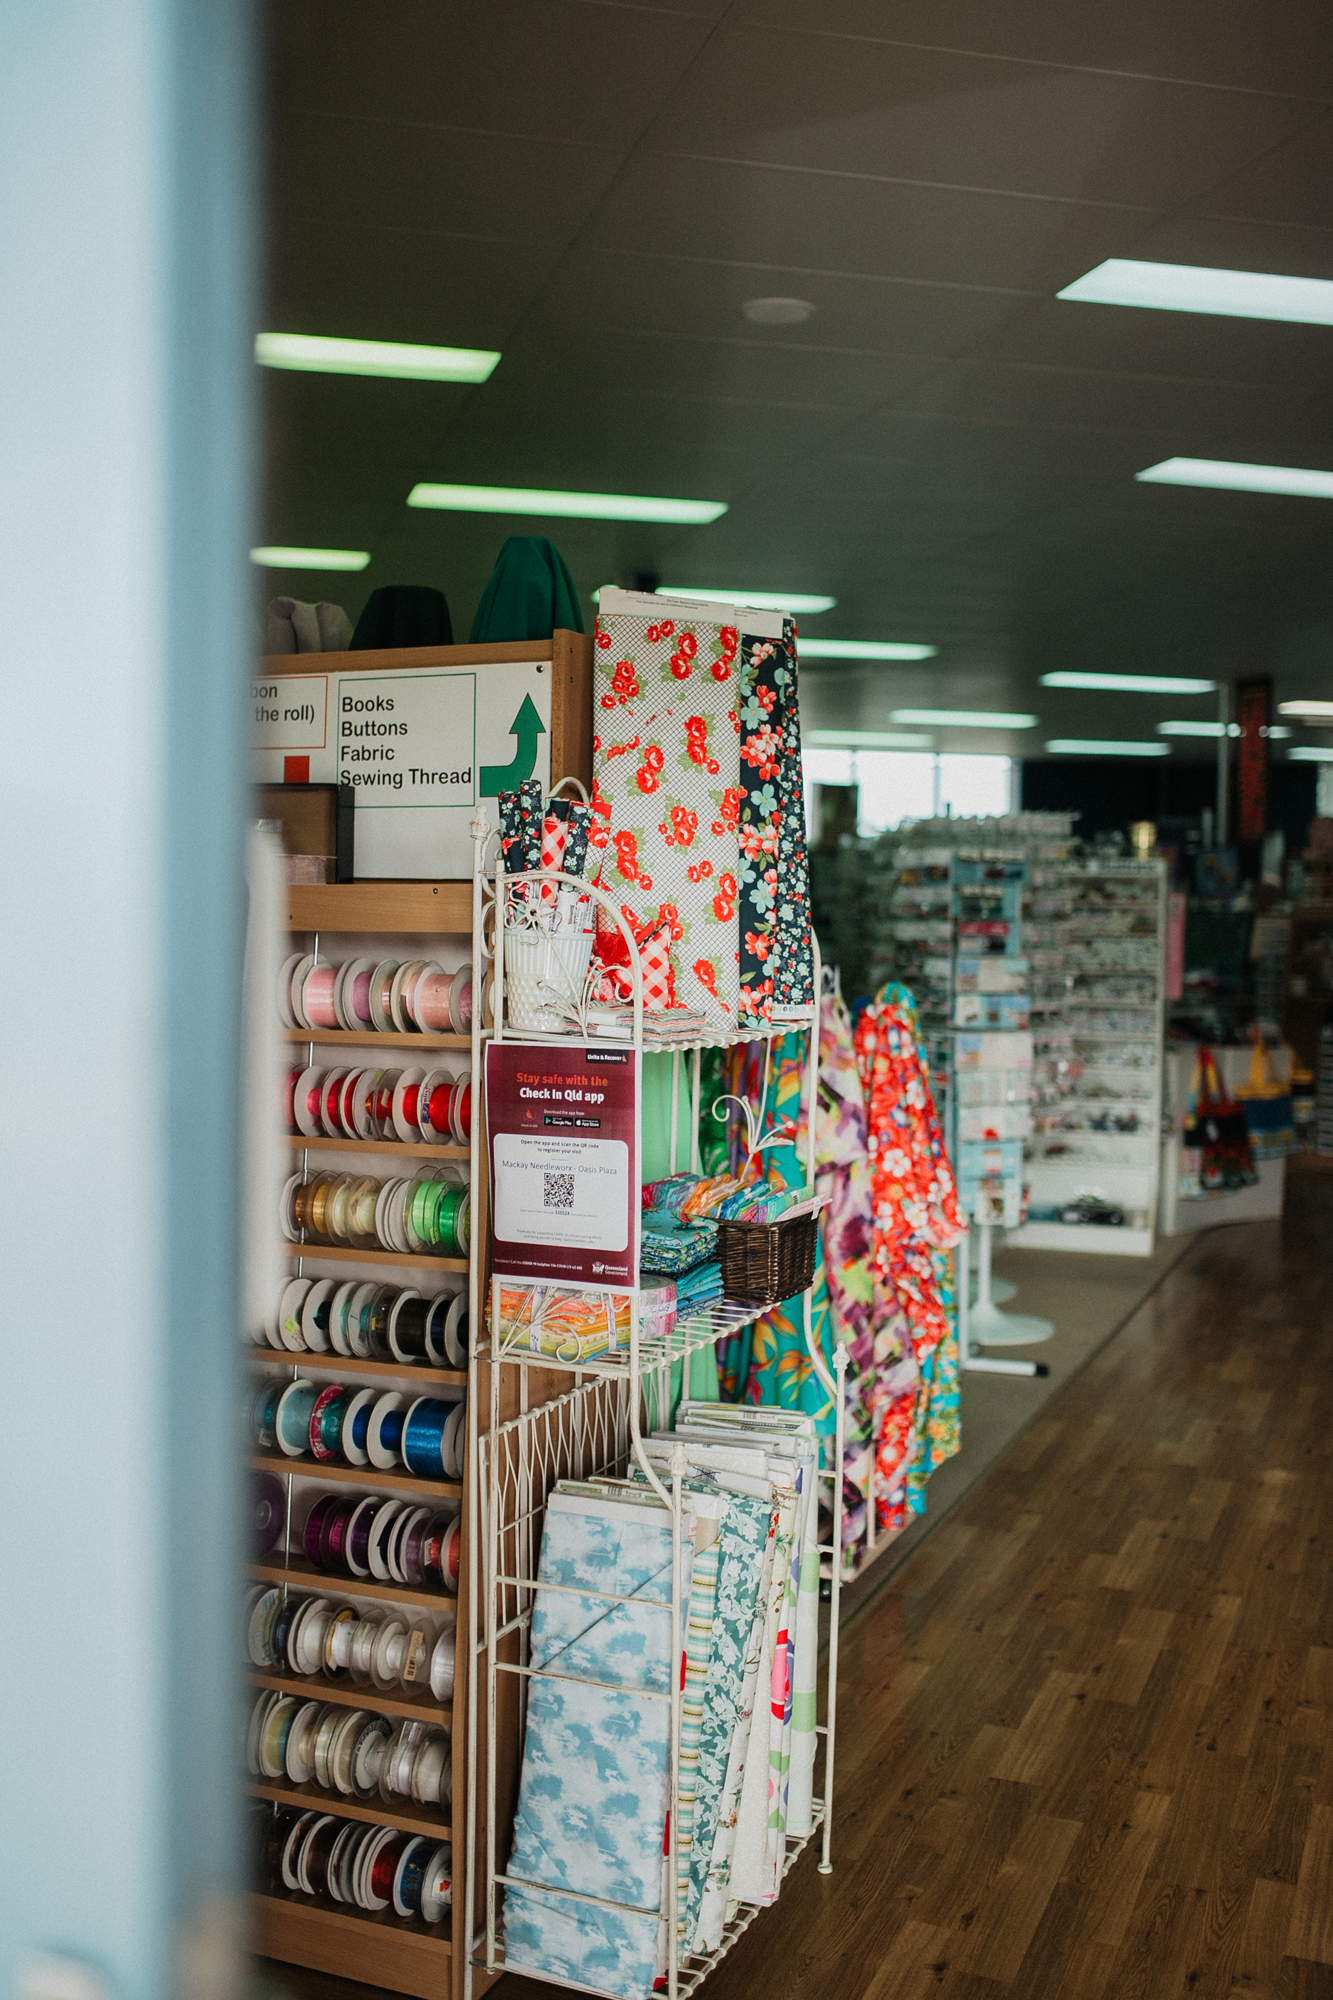 Entry of Needleworx store with rows of fabric